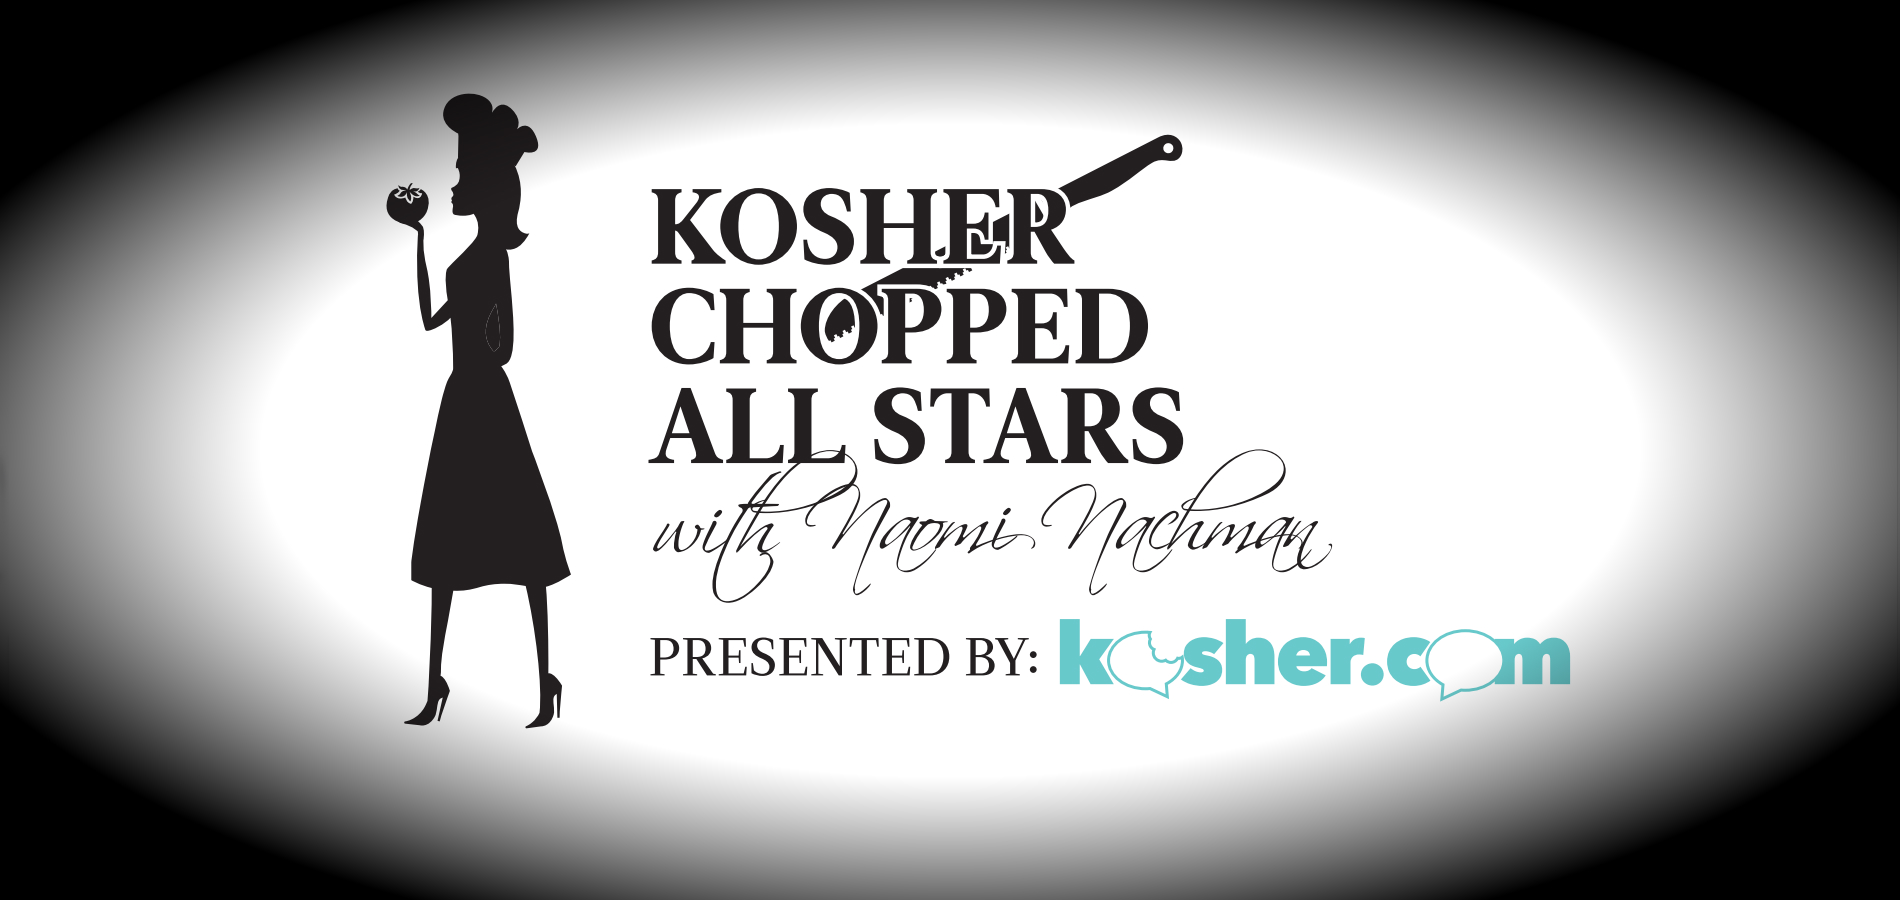 Meet Your Kosher Chopped All Stars Competitors! (And Root For Them at The All Stars Gala THIS SUNDAY!)